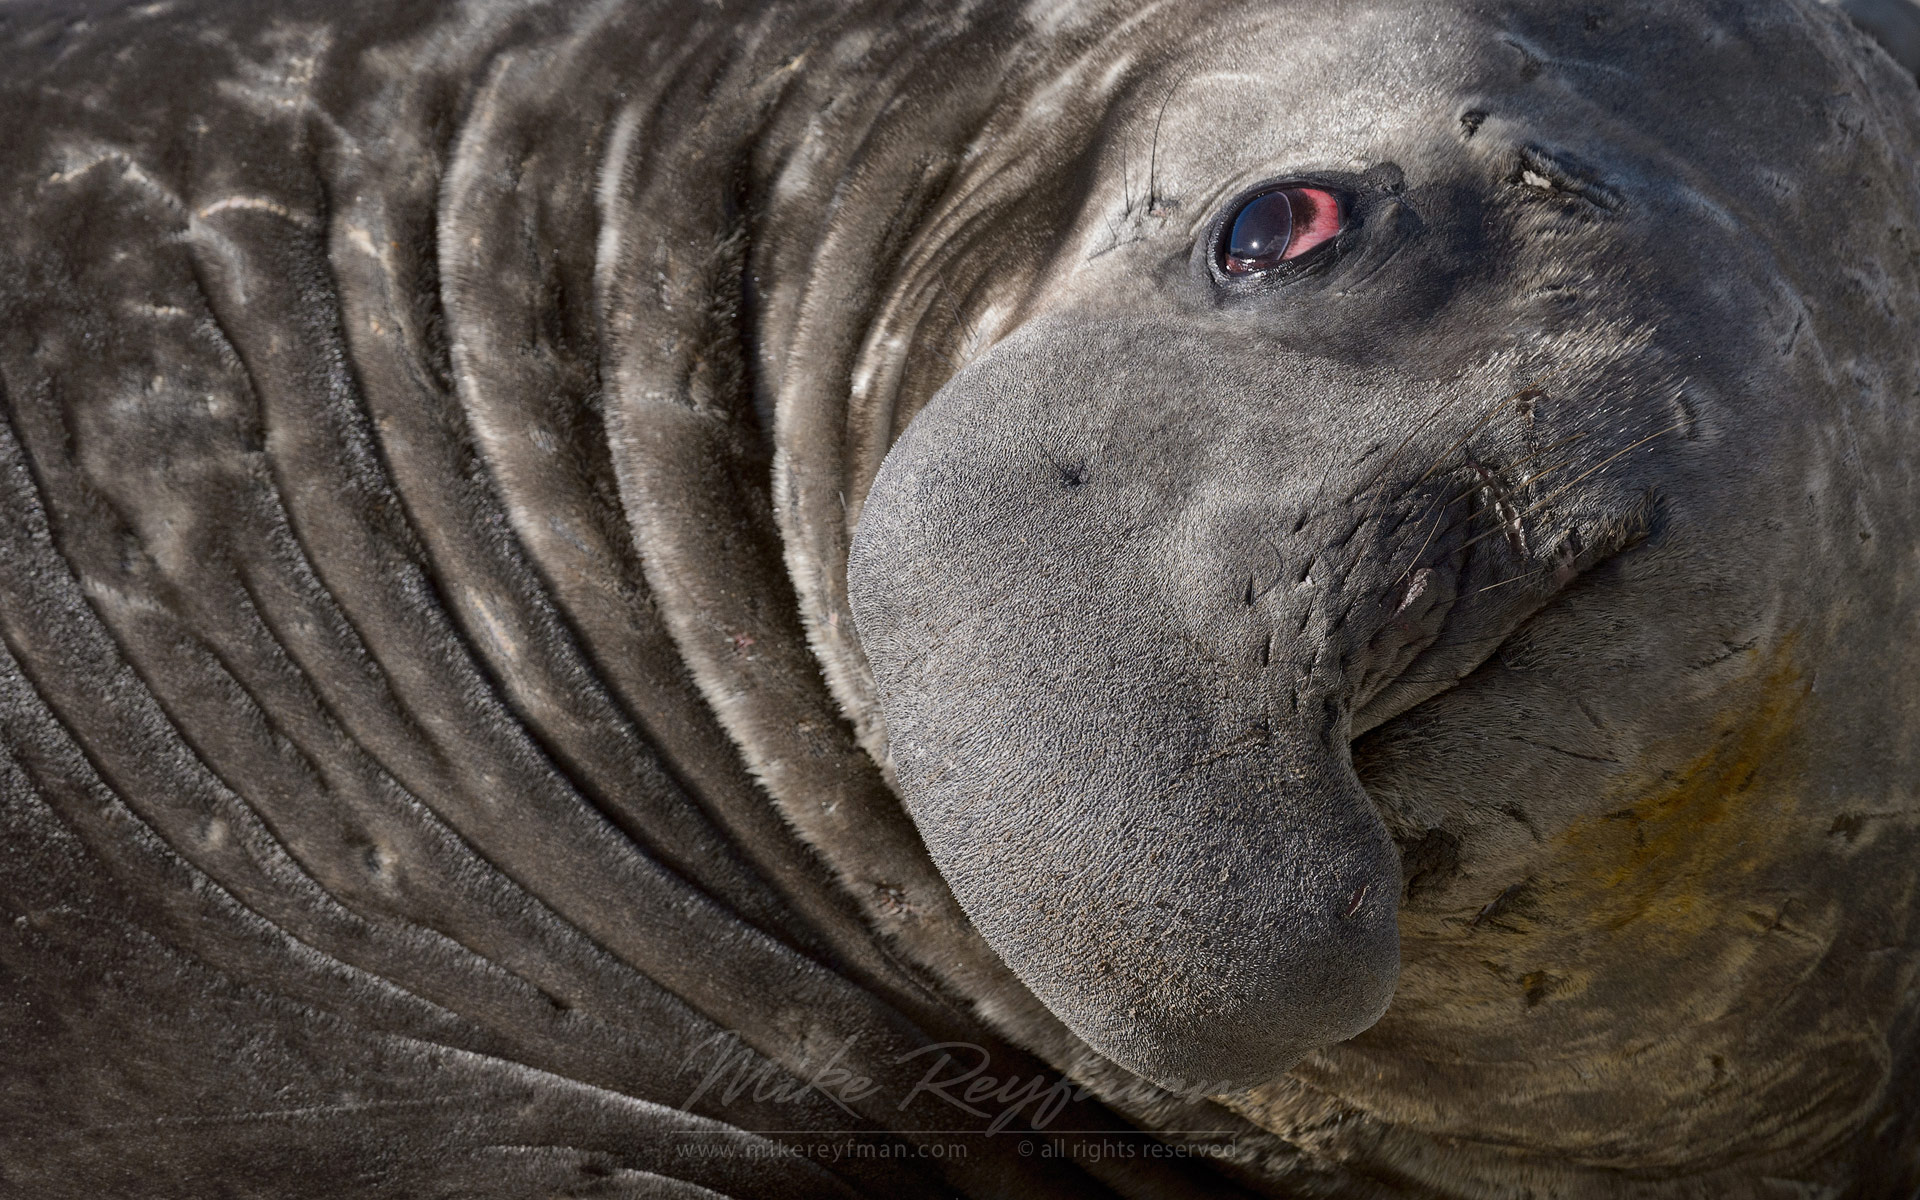 Sleaping Southern Elephant Seal (Mirounga leonina). South Georgia, Sub-Antarctic - Southern-Elephant-Seals-Fur-Seals-South-Georgia-Sub-Antarctic - Mike Reyfman Photography